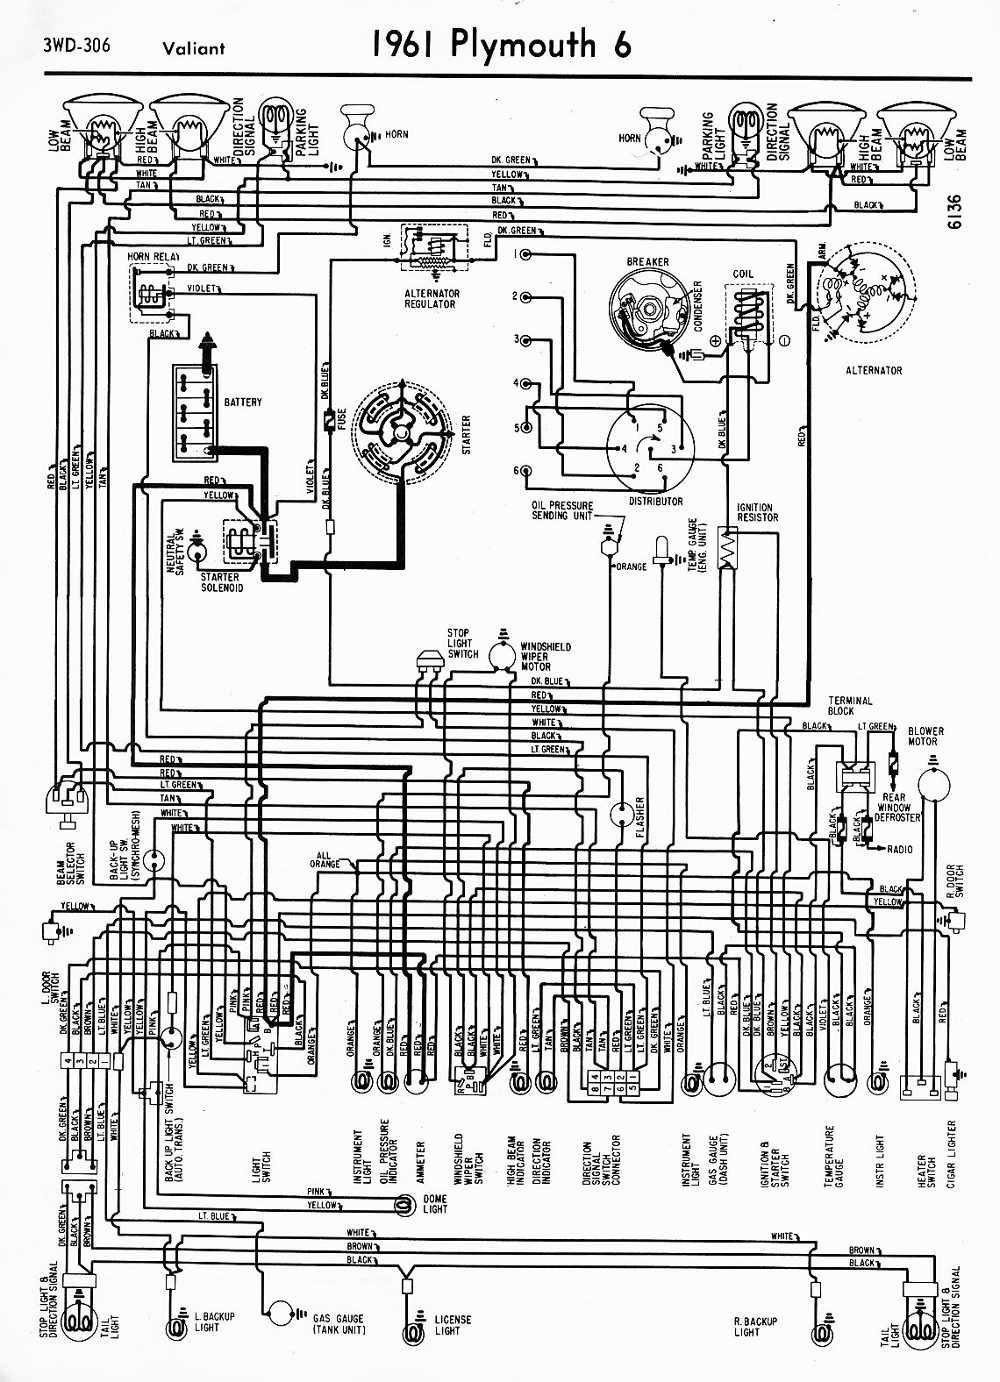 1976 Mopar Starter Wiring Trusted Diagrams Mustang Diagram 74 Plymouth Schematics U2022 2004 Chrysler Sebring Fuse Box